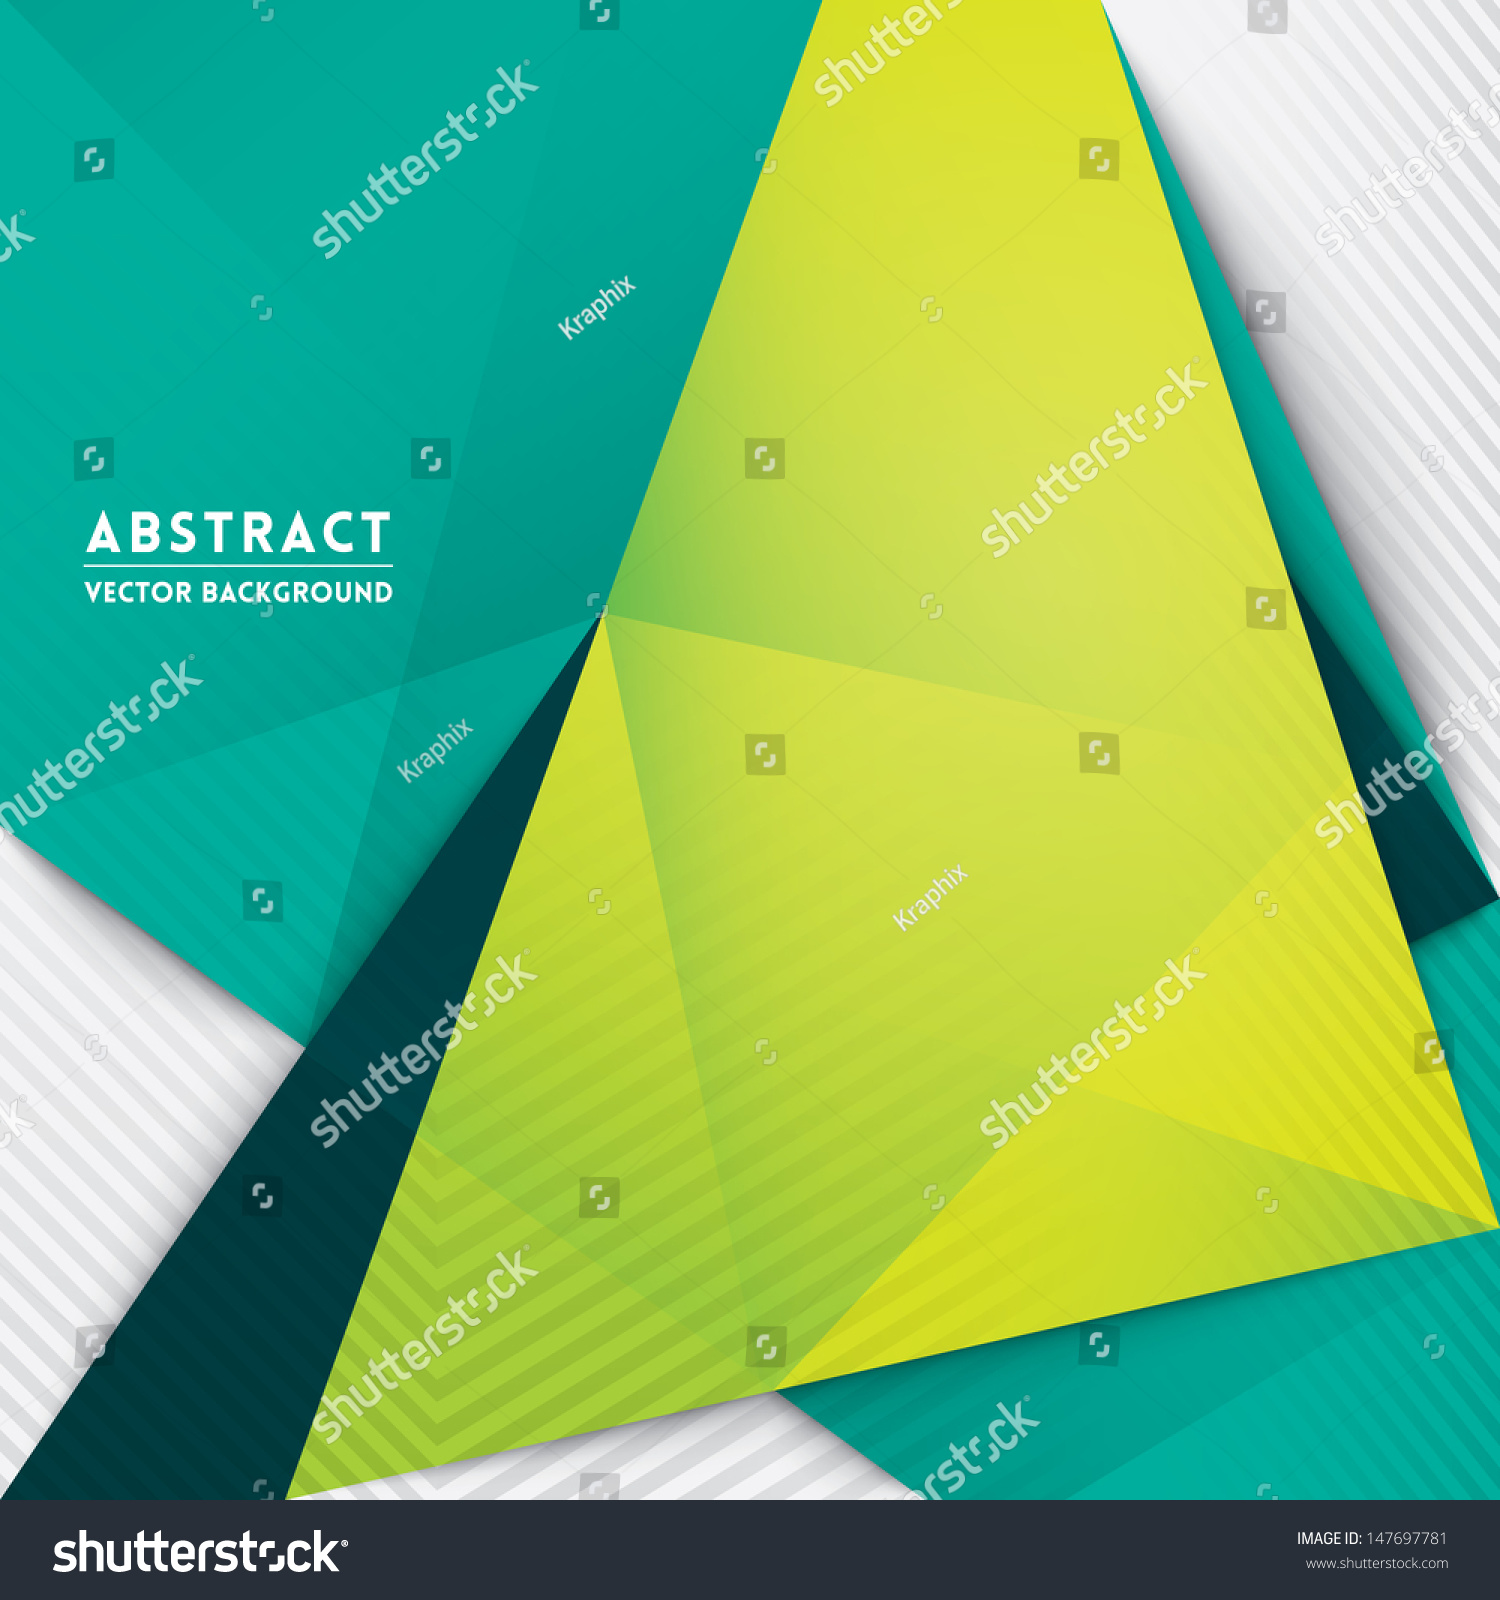 Book Cover Design Isolated Over Colorful Background : Abstract triangle shape background for web design print